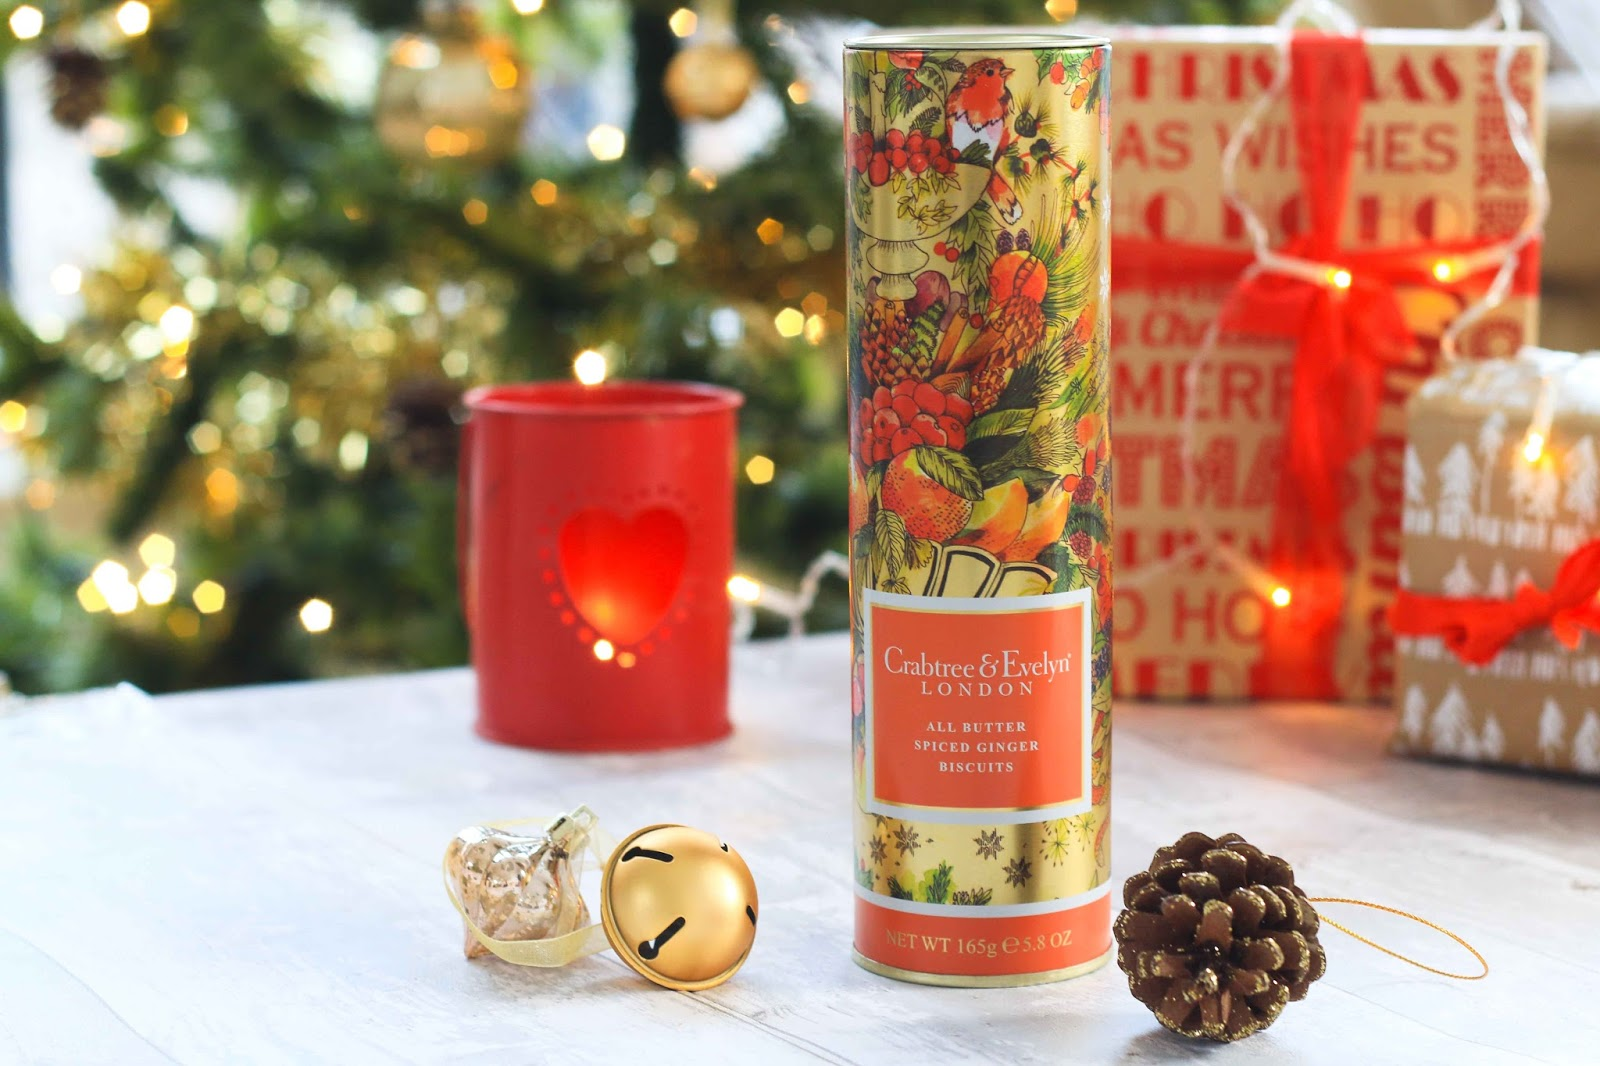 Crabtree and evelyn ginger biscuits